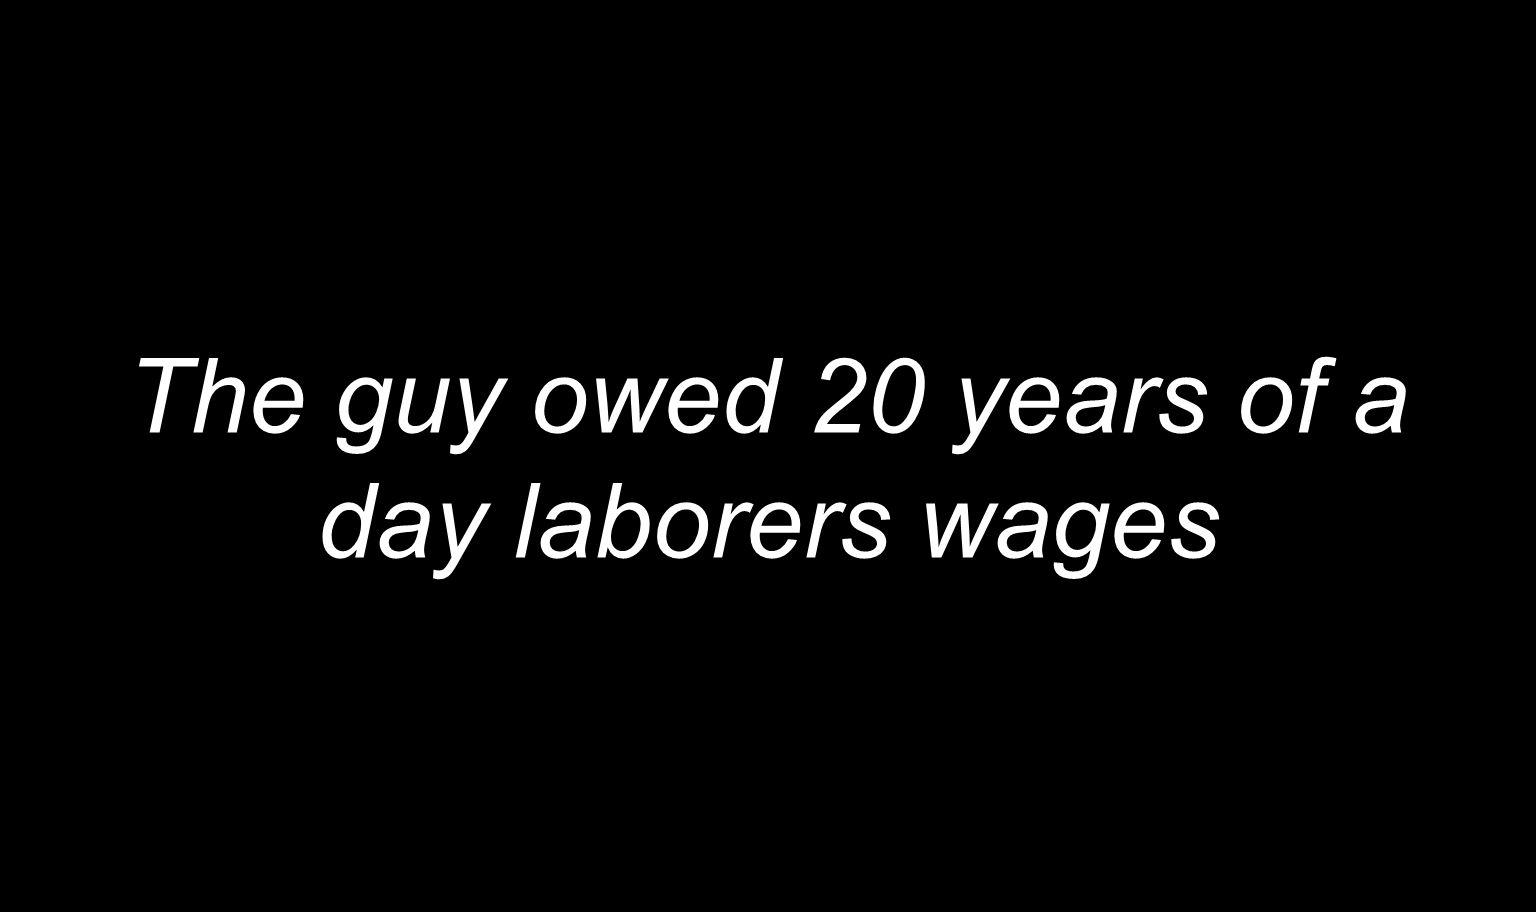 The guy owed 20 years of a day laborers wages